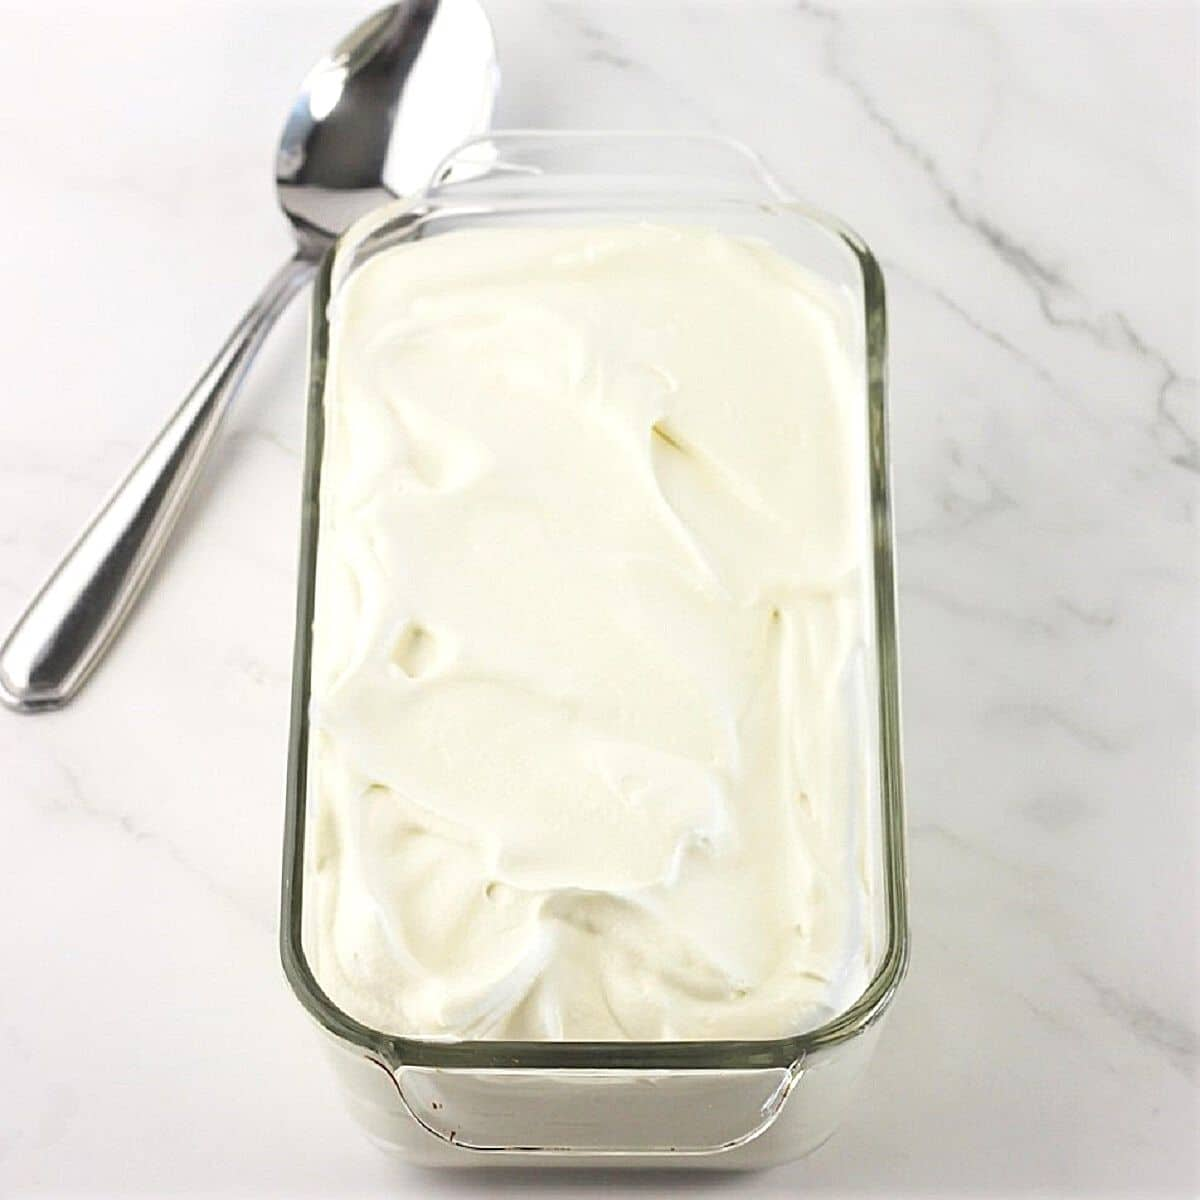 whipped cream mixture in a glass loaf pan with a spoon on the side